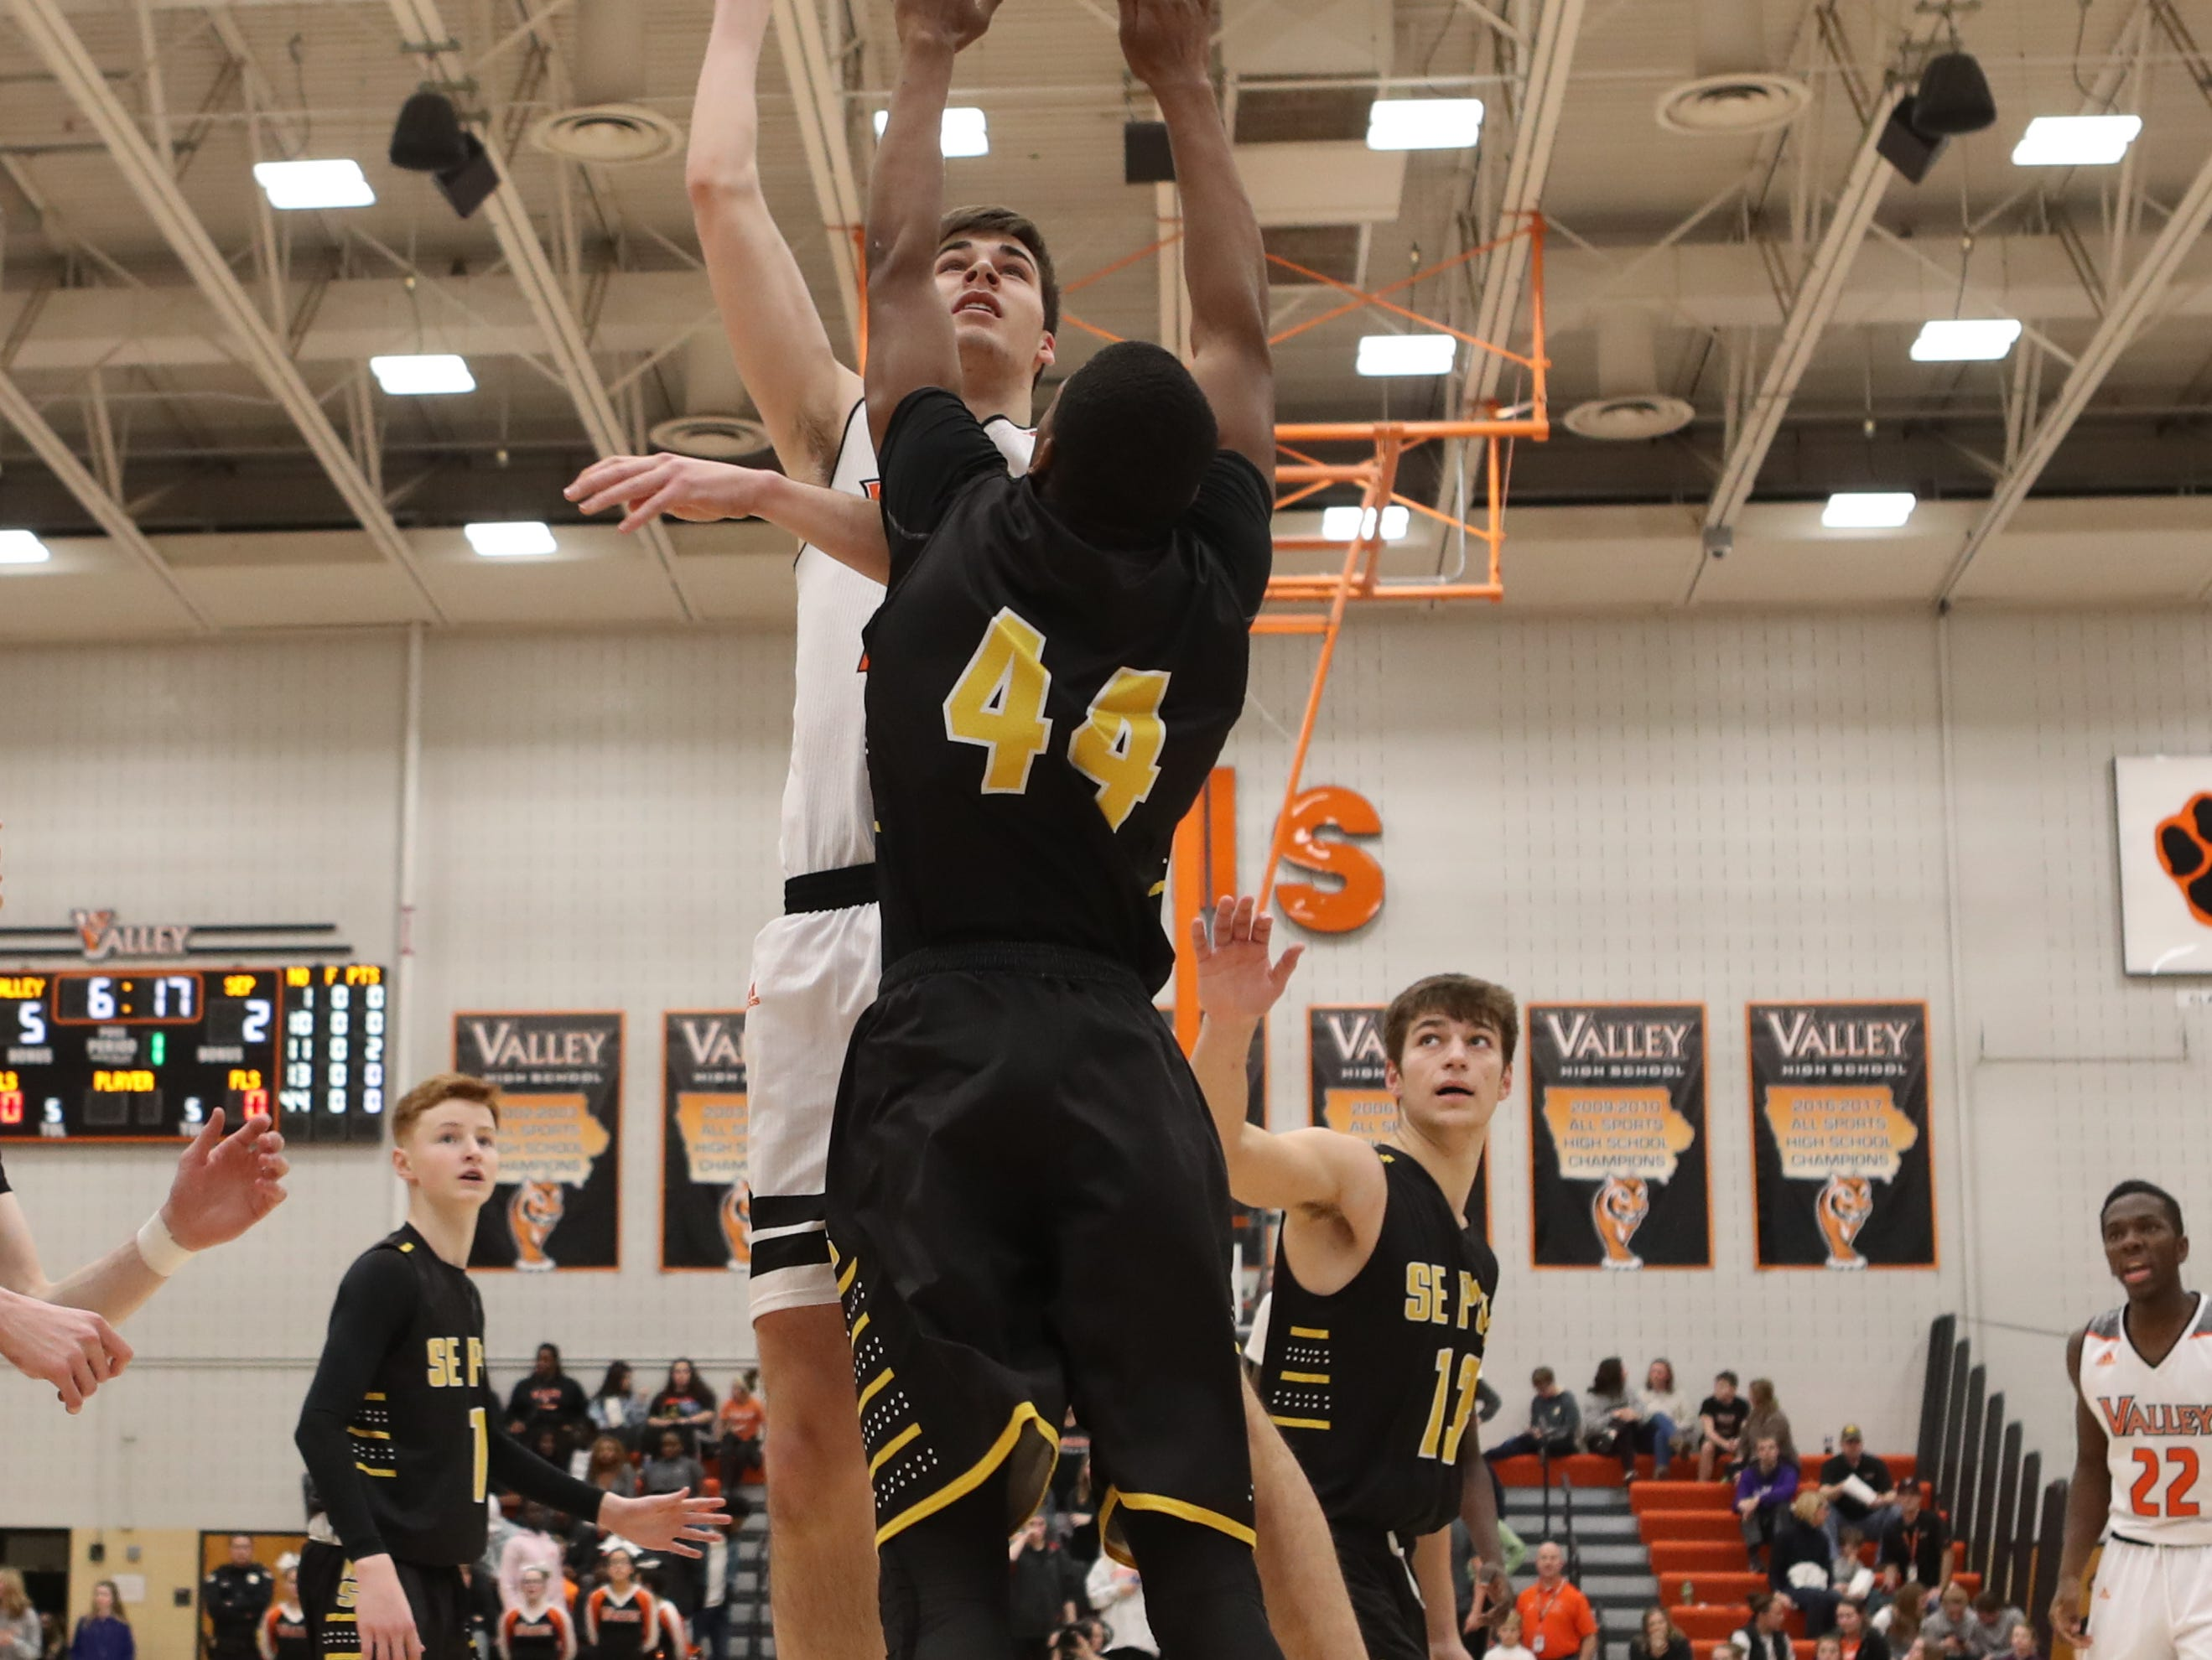 Valley Tigers' Will Berg (32) shoots over the top of Southeast Polk Rams' Malichai Williams (44) during a boys basketball game at Valley High School on Jan. 11, 2019.